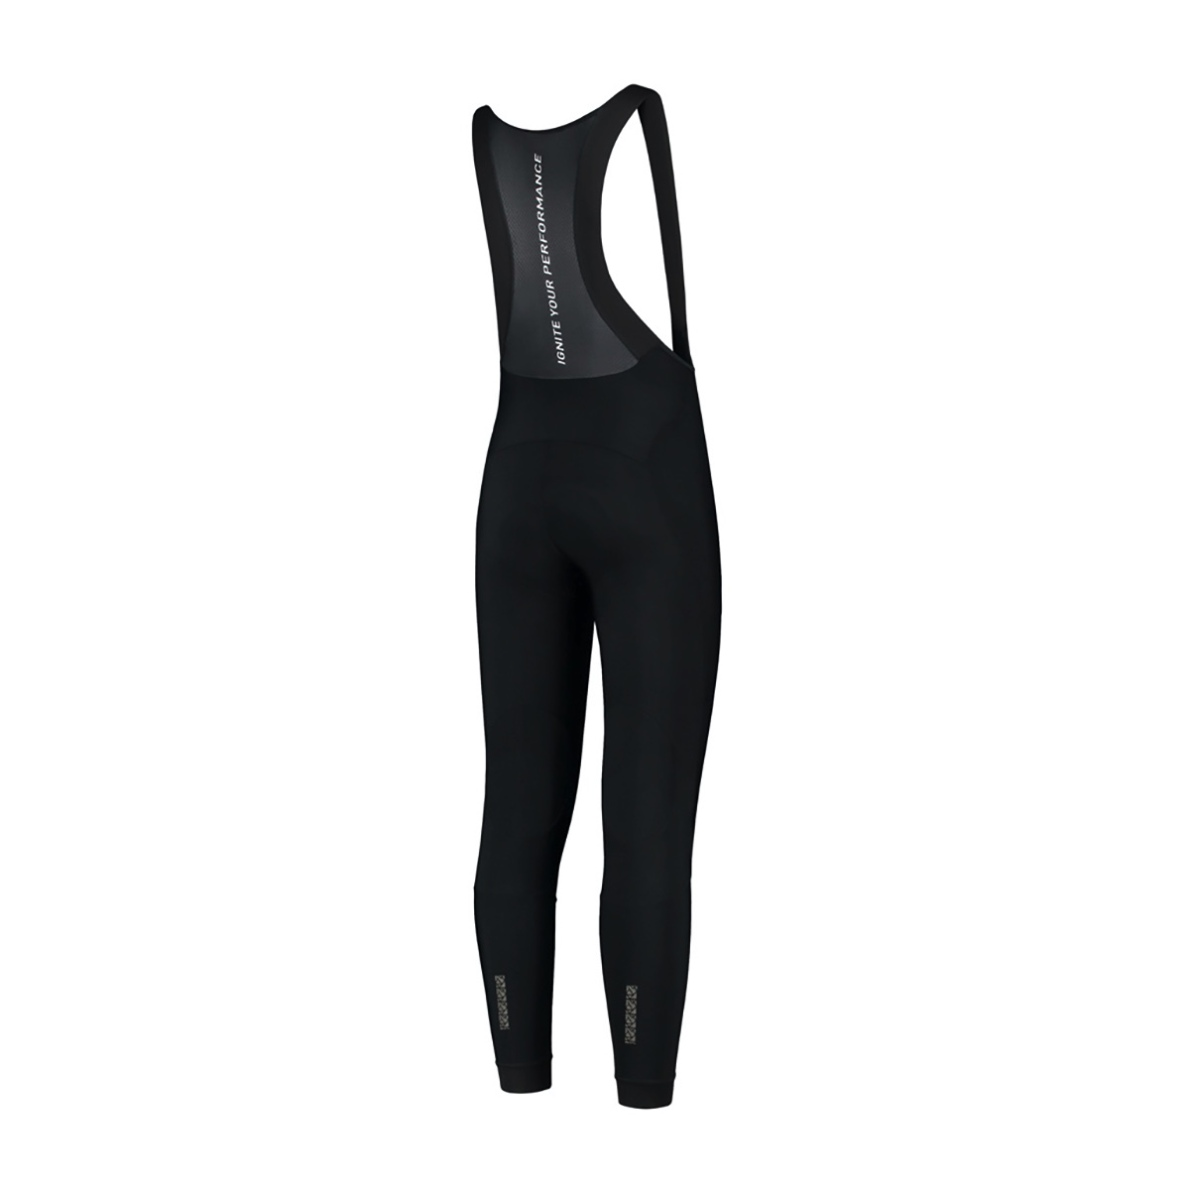 S-PHYRE Fietsbroek Lang Winter